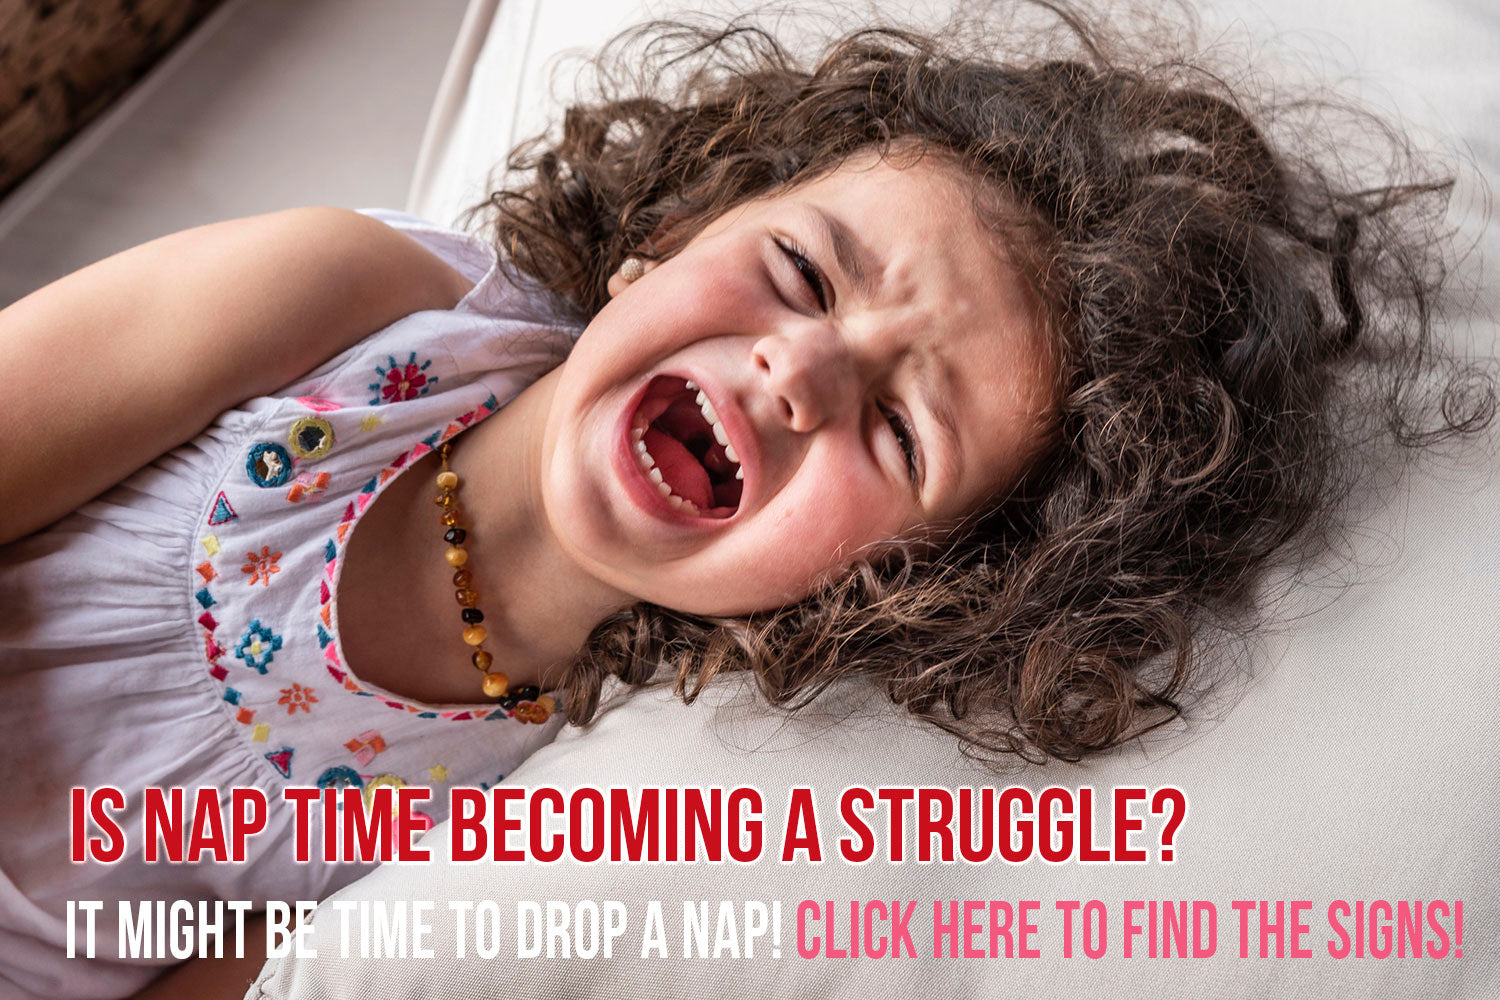 Drop it Like it's Hot: Tips for Dropping Naps